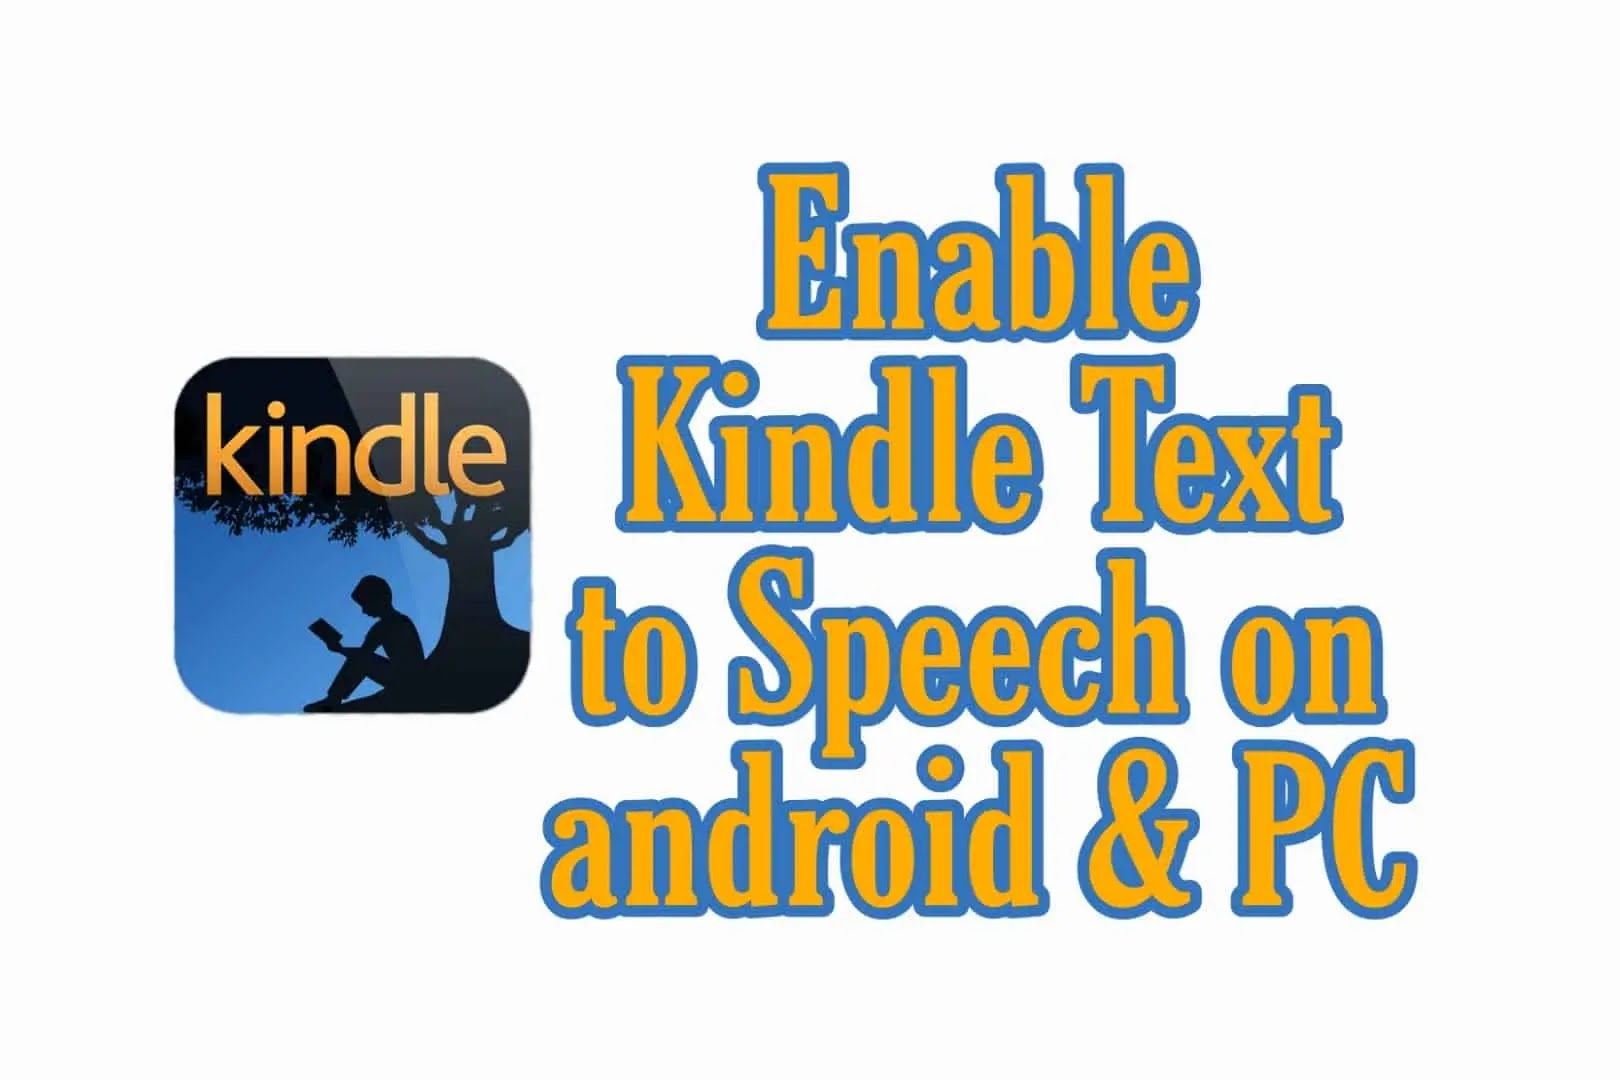 kindle text to speech android and PC